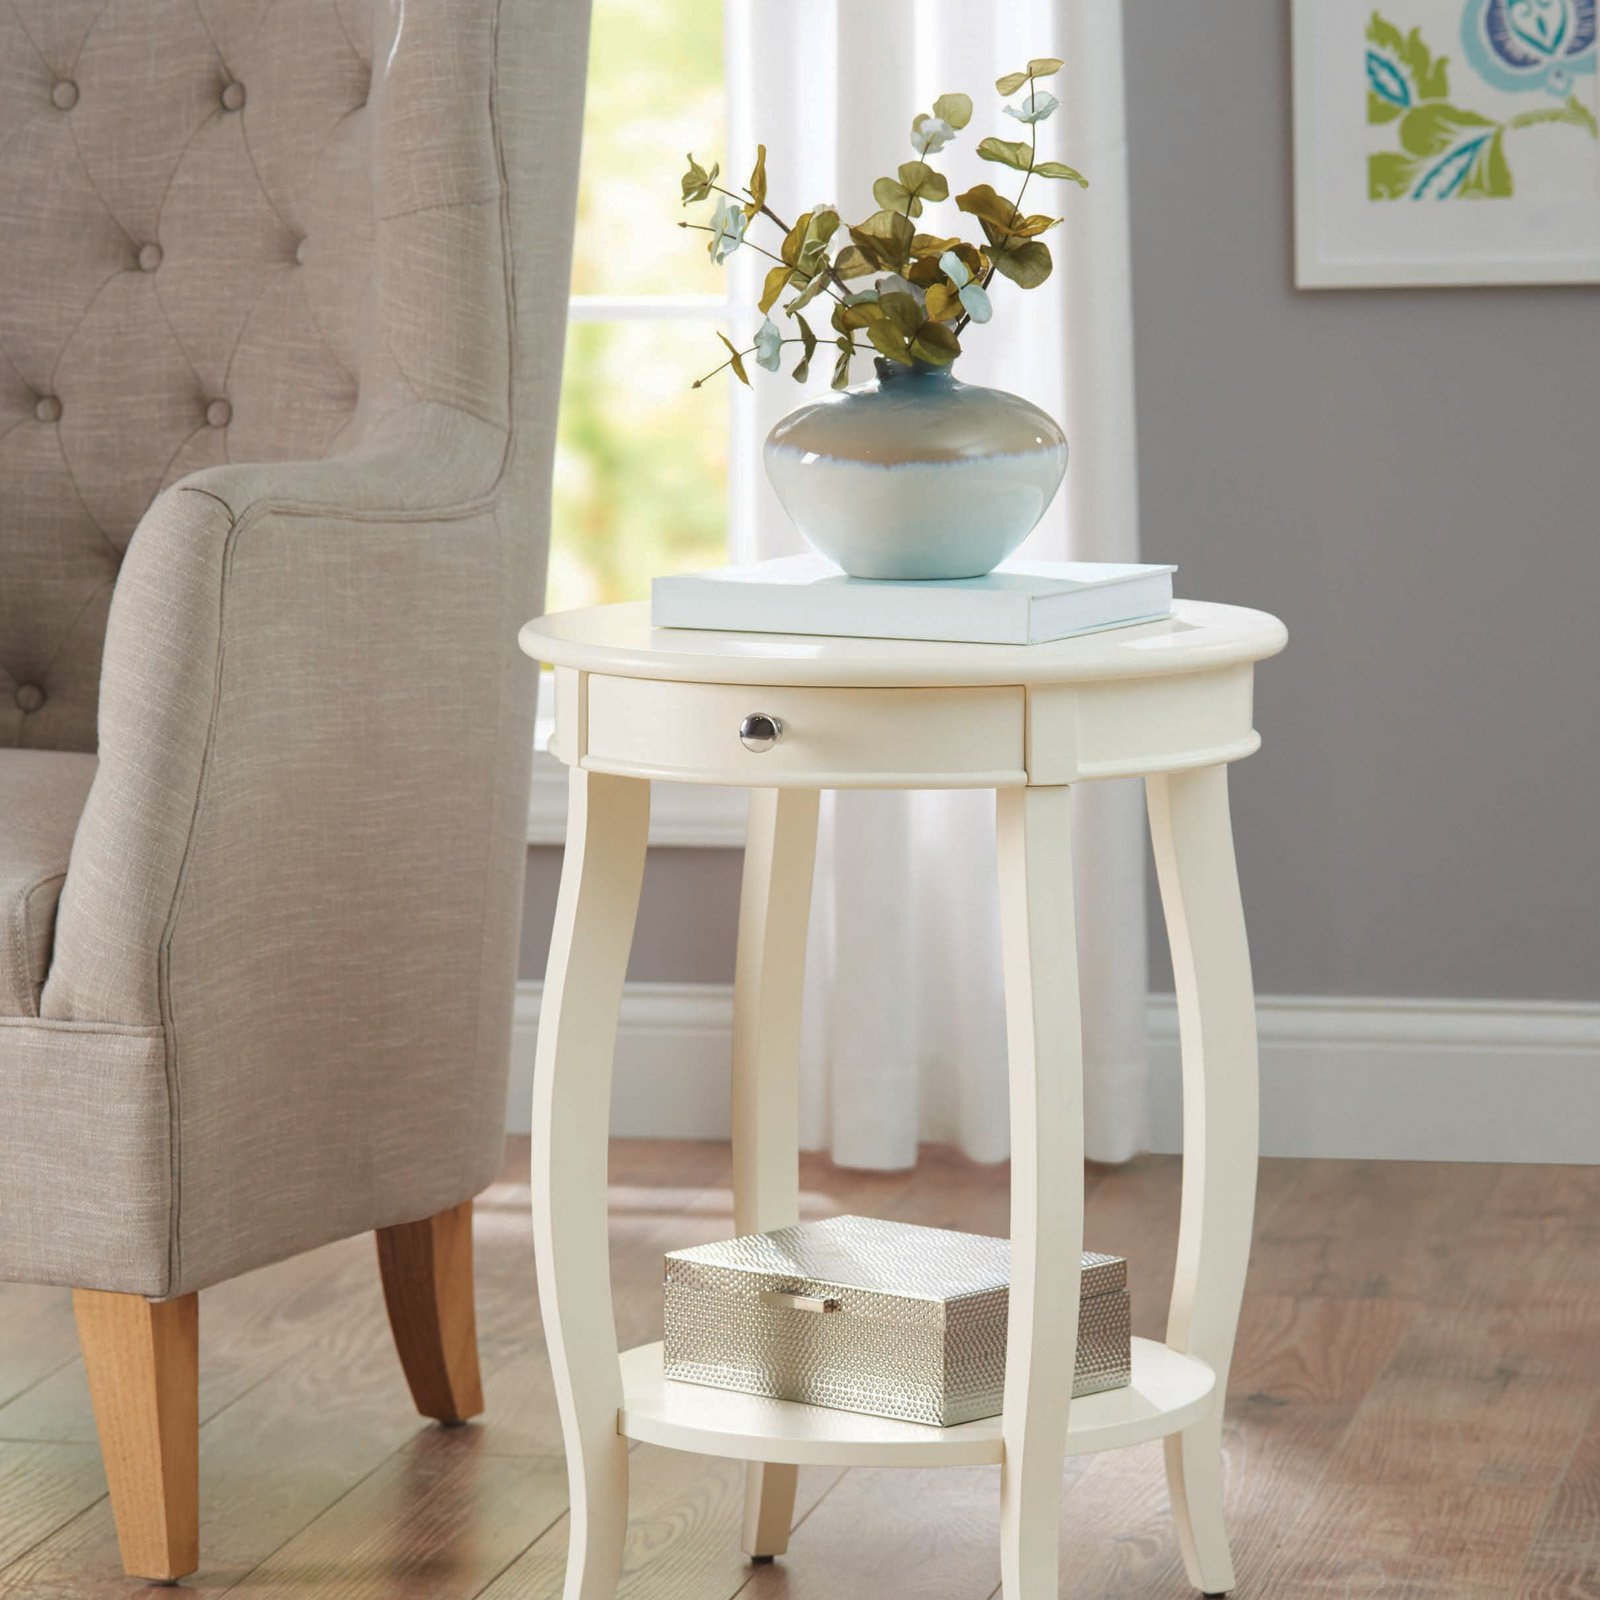 1e63cd1531ce9a9a52076e15abd6e8b4 - Better Homes And Gardens Round Accent Table